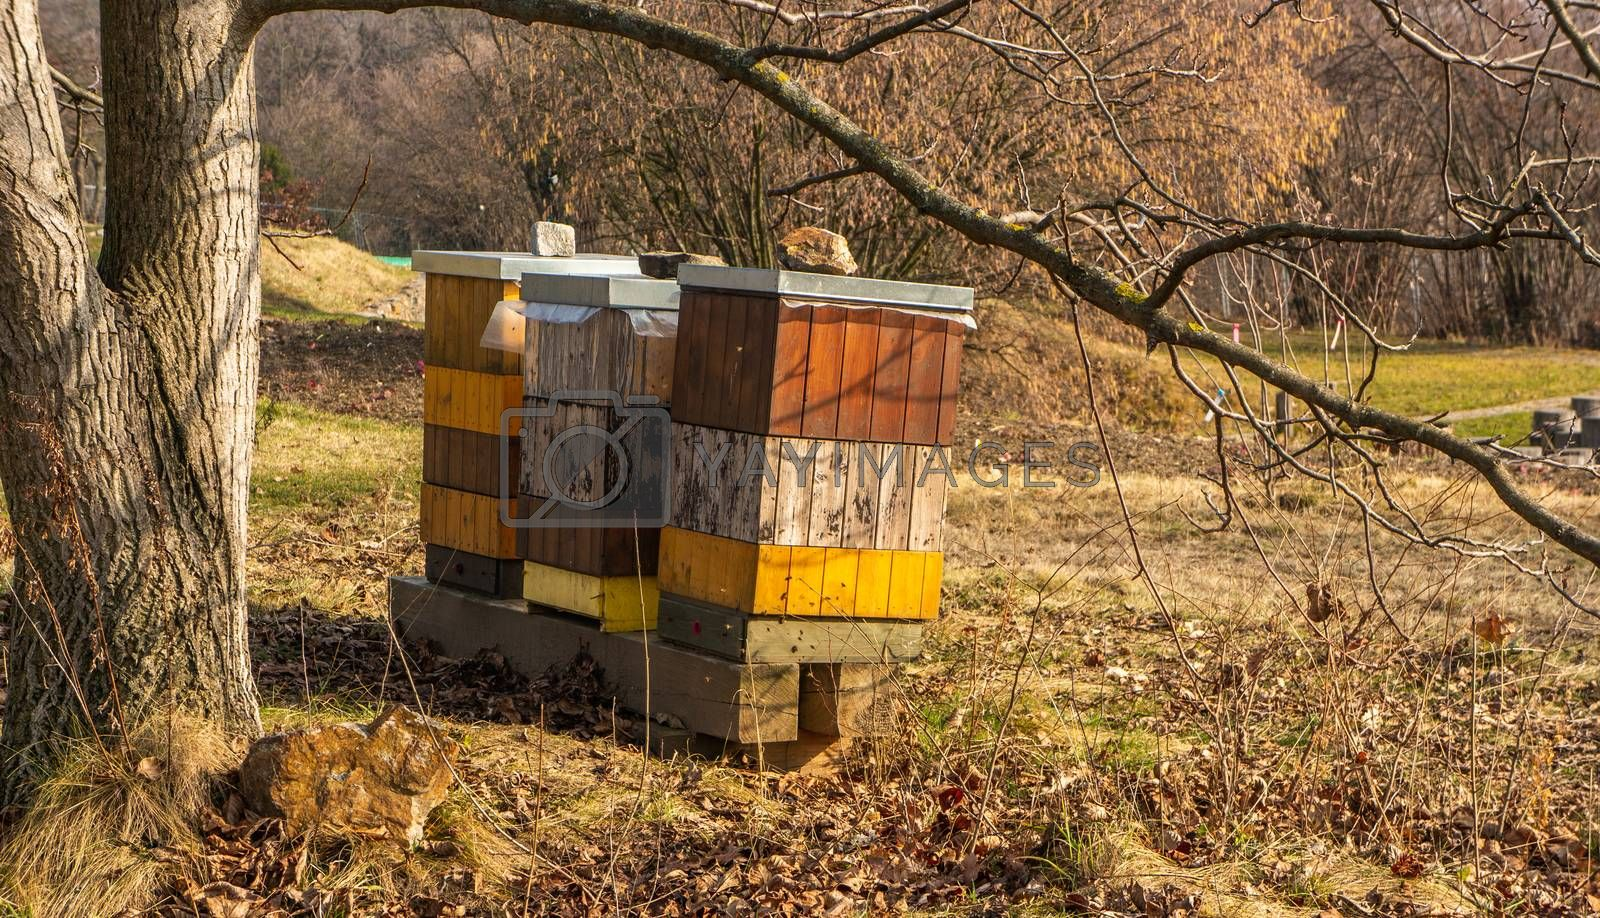 Beehives under a lrage tree in the Botanical gardens, Troja, Prague. Fall themed with dry leaves on the ground and soft orange sunlight.